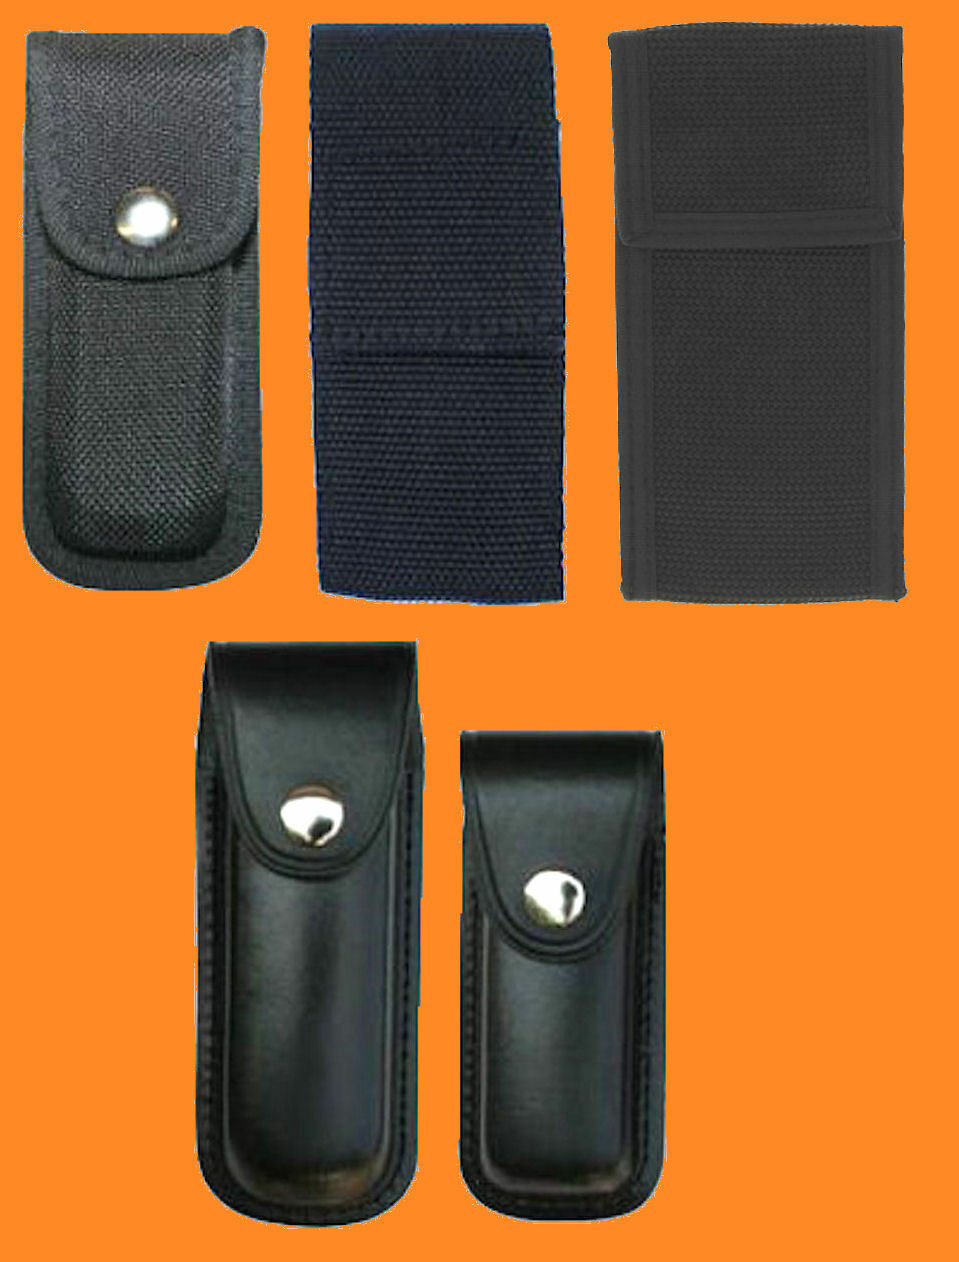 g rteltaschen messertasche g rteletui g rtelholster f r messer taschenmesser ebay. Black Bedroom Furniture Sets. Home Design Ideas